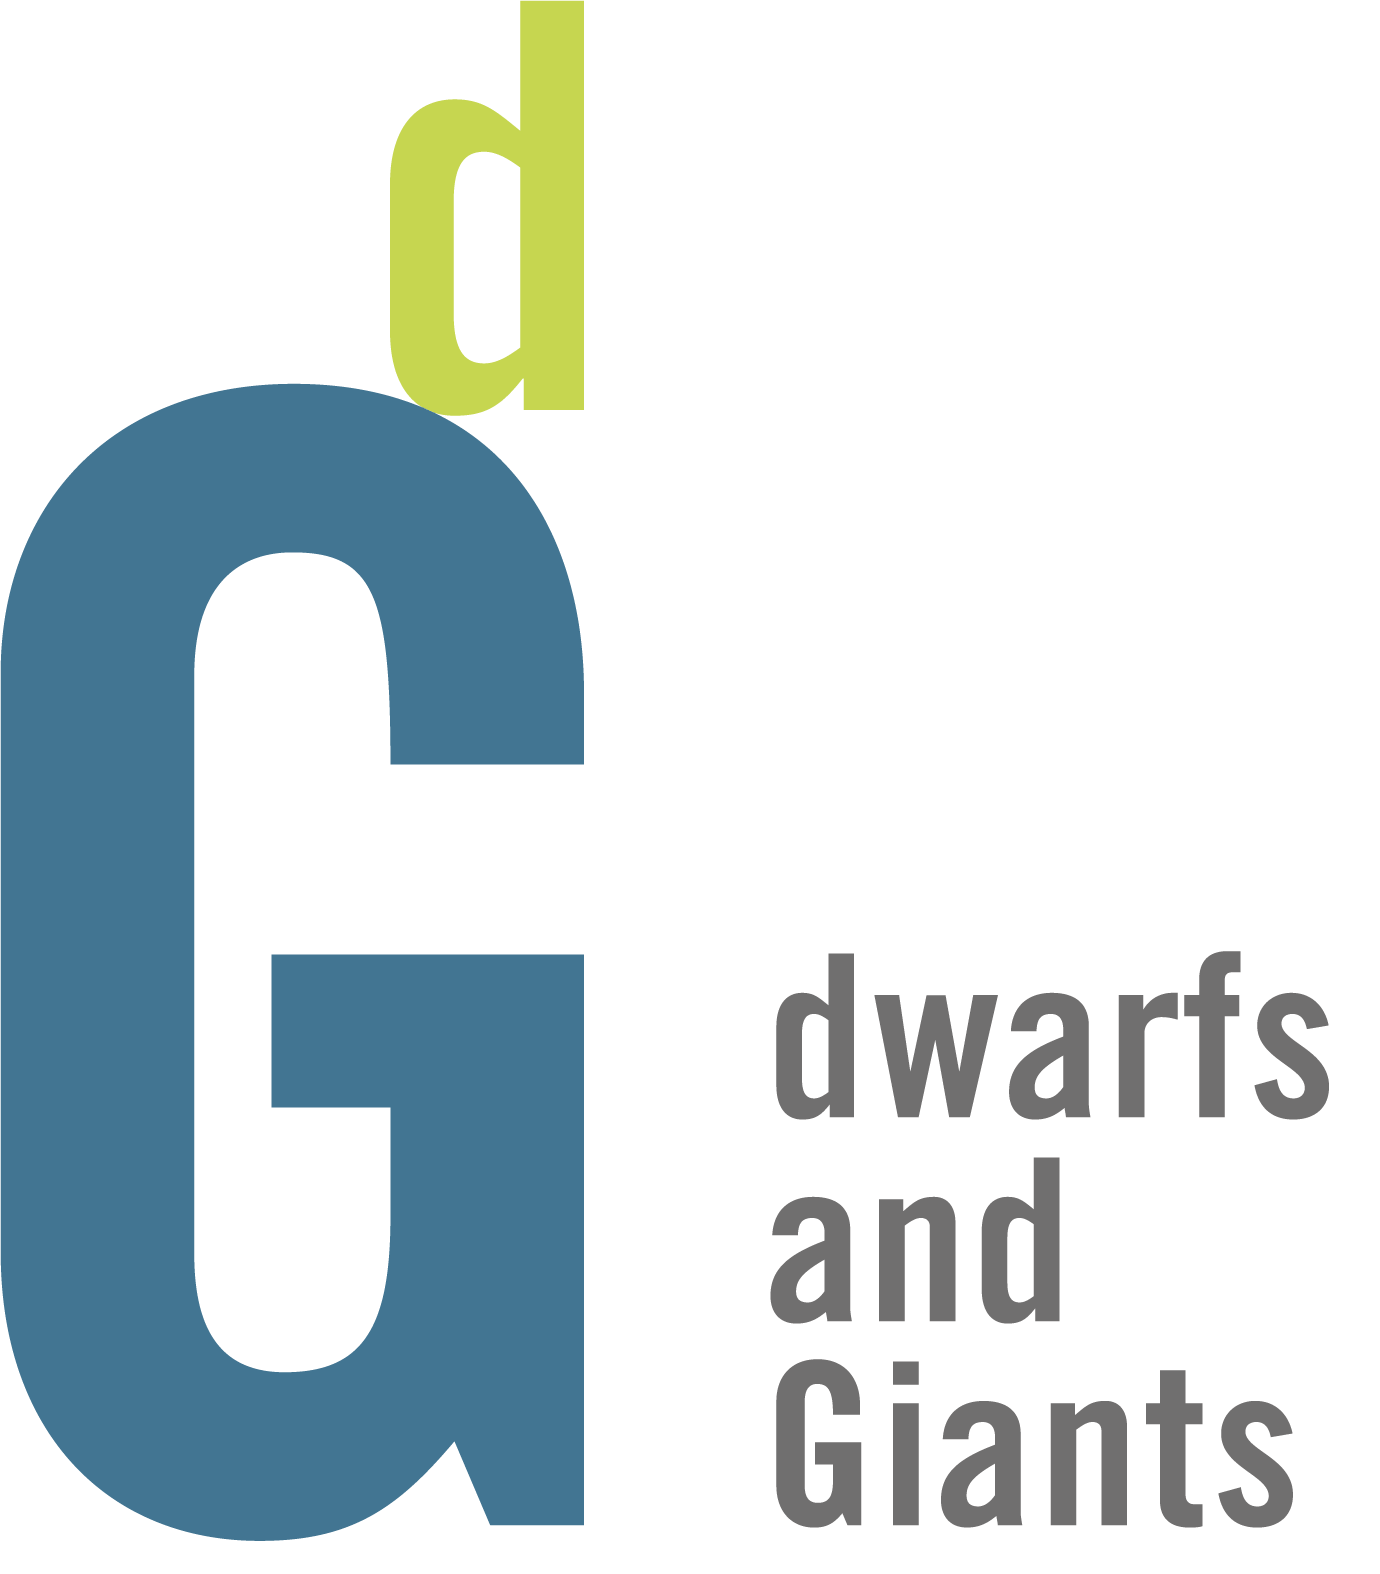 Dwarfs and Giants logo